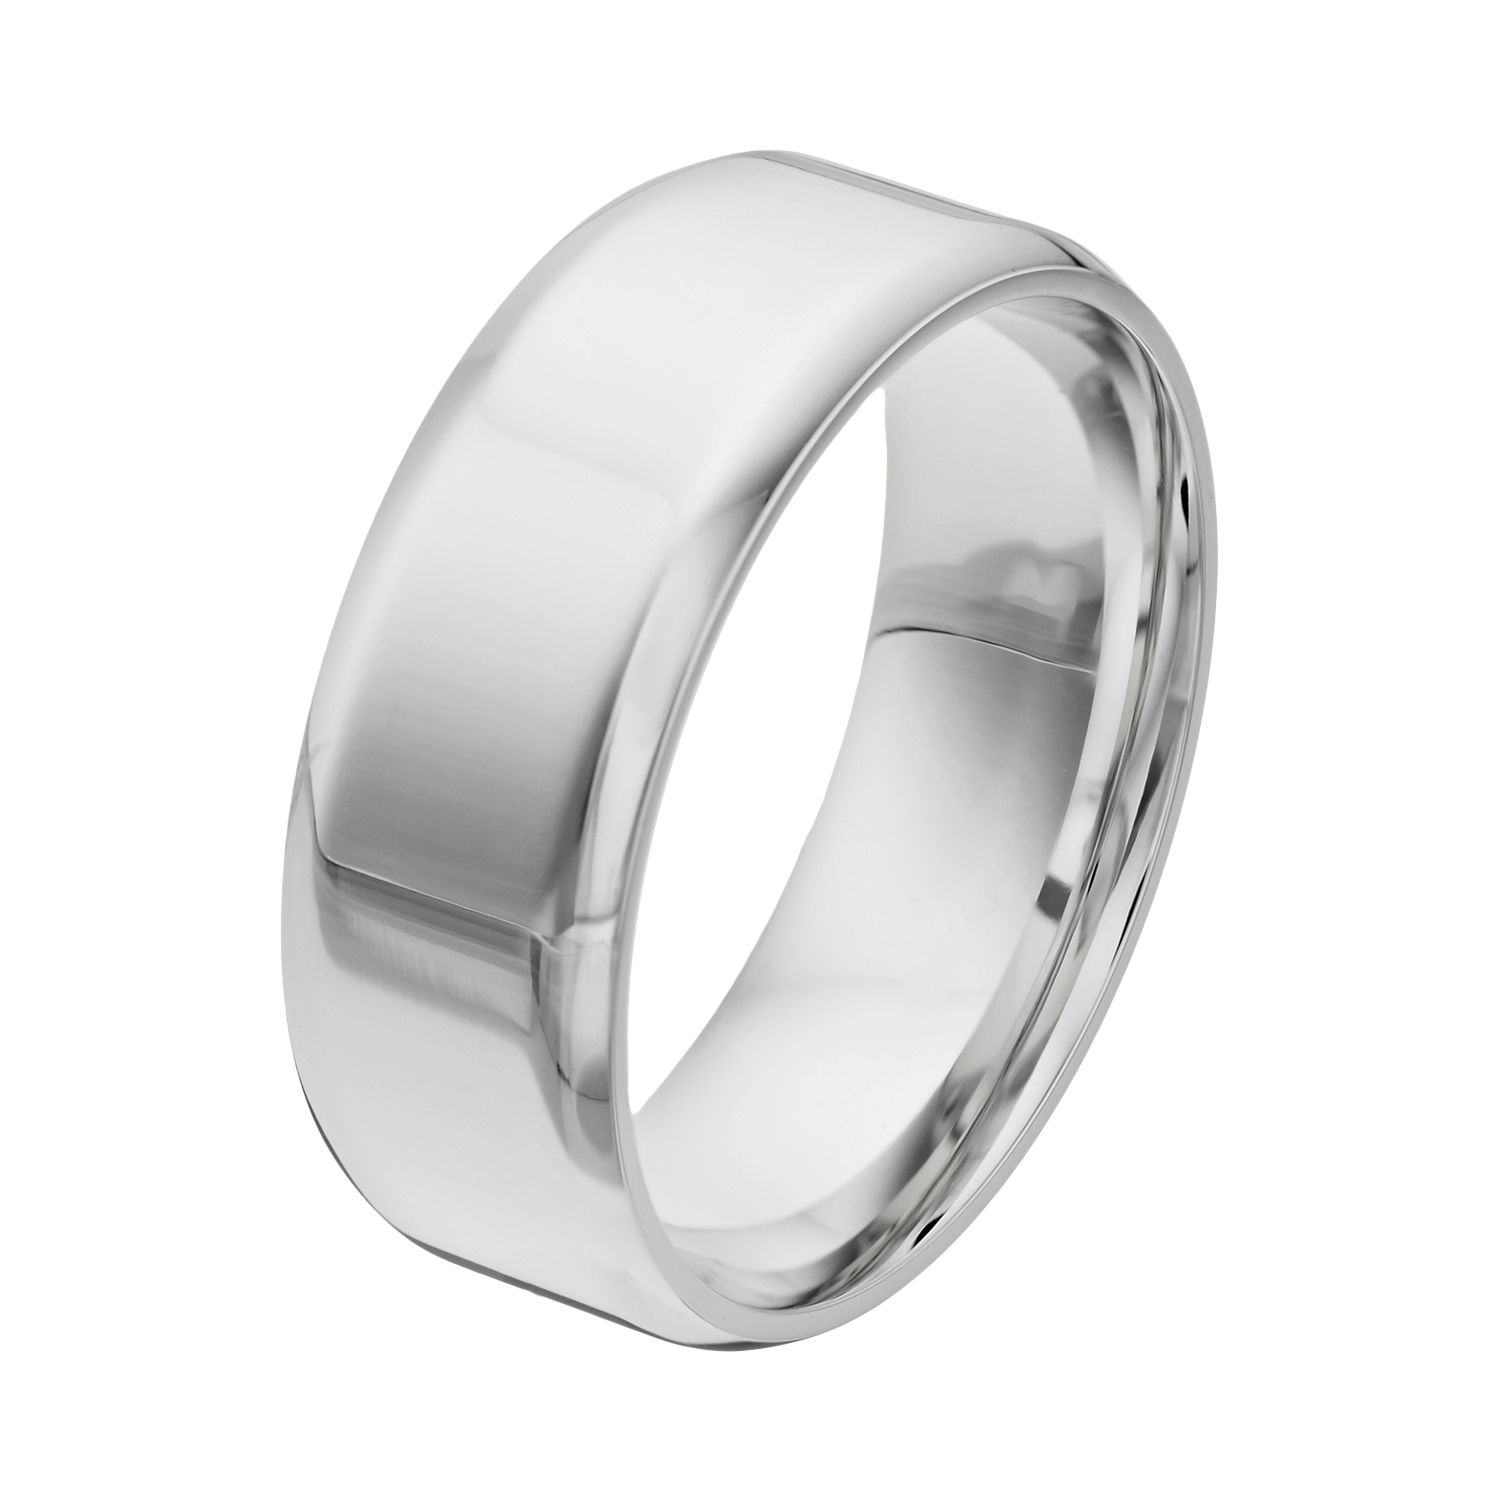 product recipient men s rings ring satin wedding titanium grooms h jewellery category number ridged polished webstore samuel occasion l